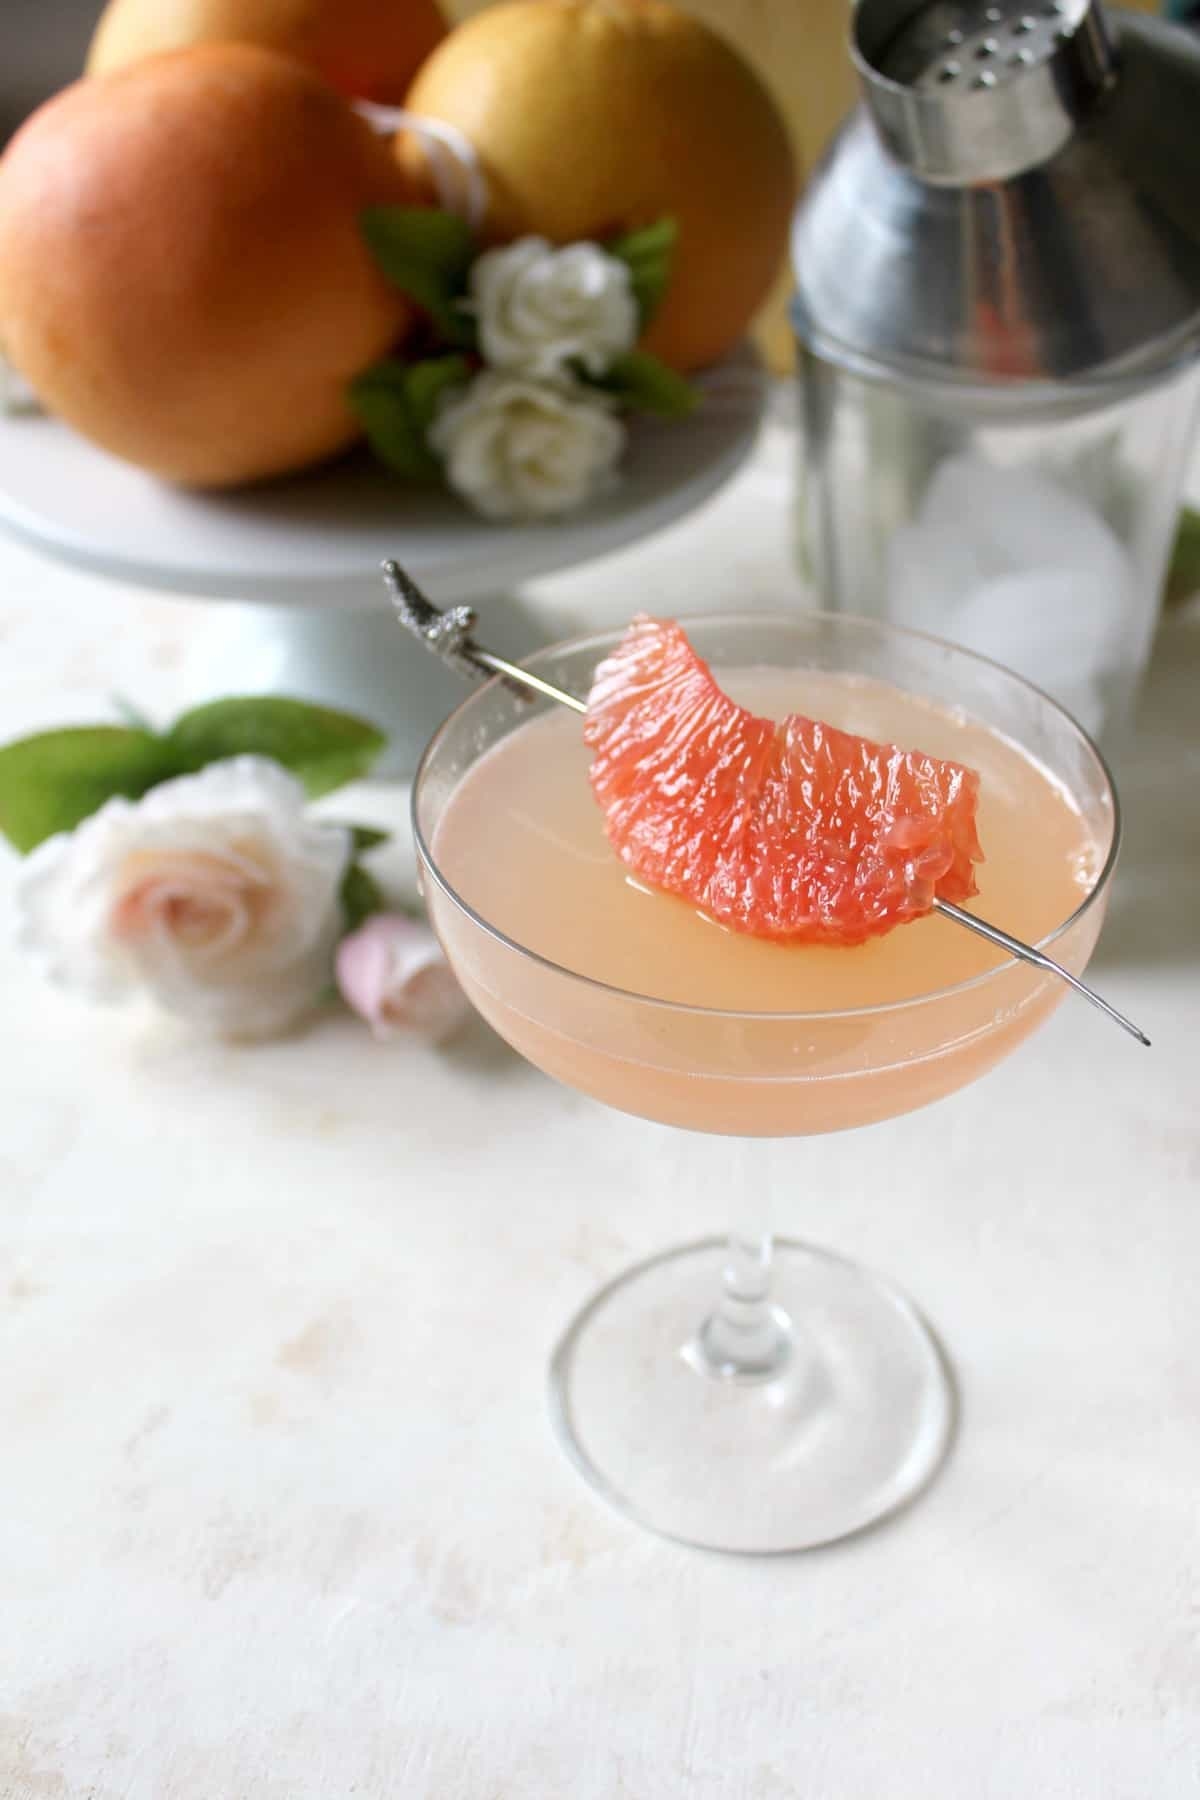 This Grapefruit Ginger Cocktail makes a refreshing elixir with a mildly spicy zing. Fresh squeezed grapefruit juice lends citrusy sweetness to the drink, while ginger beer gives the unassuming beverage effervescence and a touch of heat. Mix it up to sip on for a special celebration or a weekend treat!